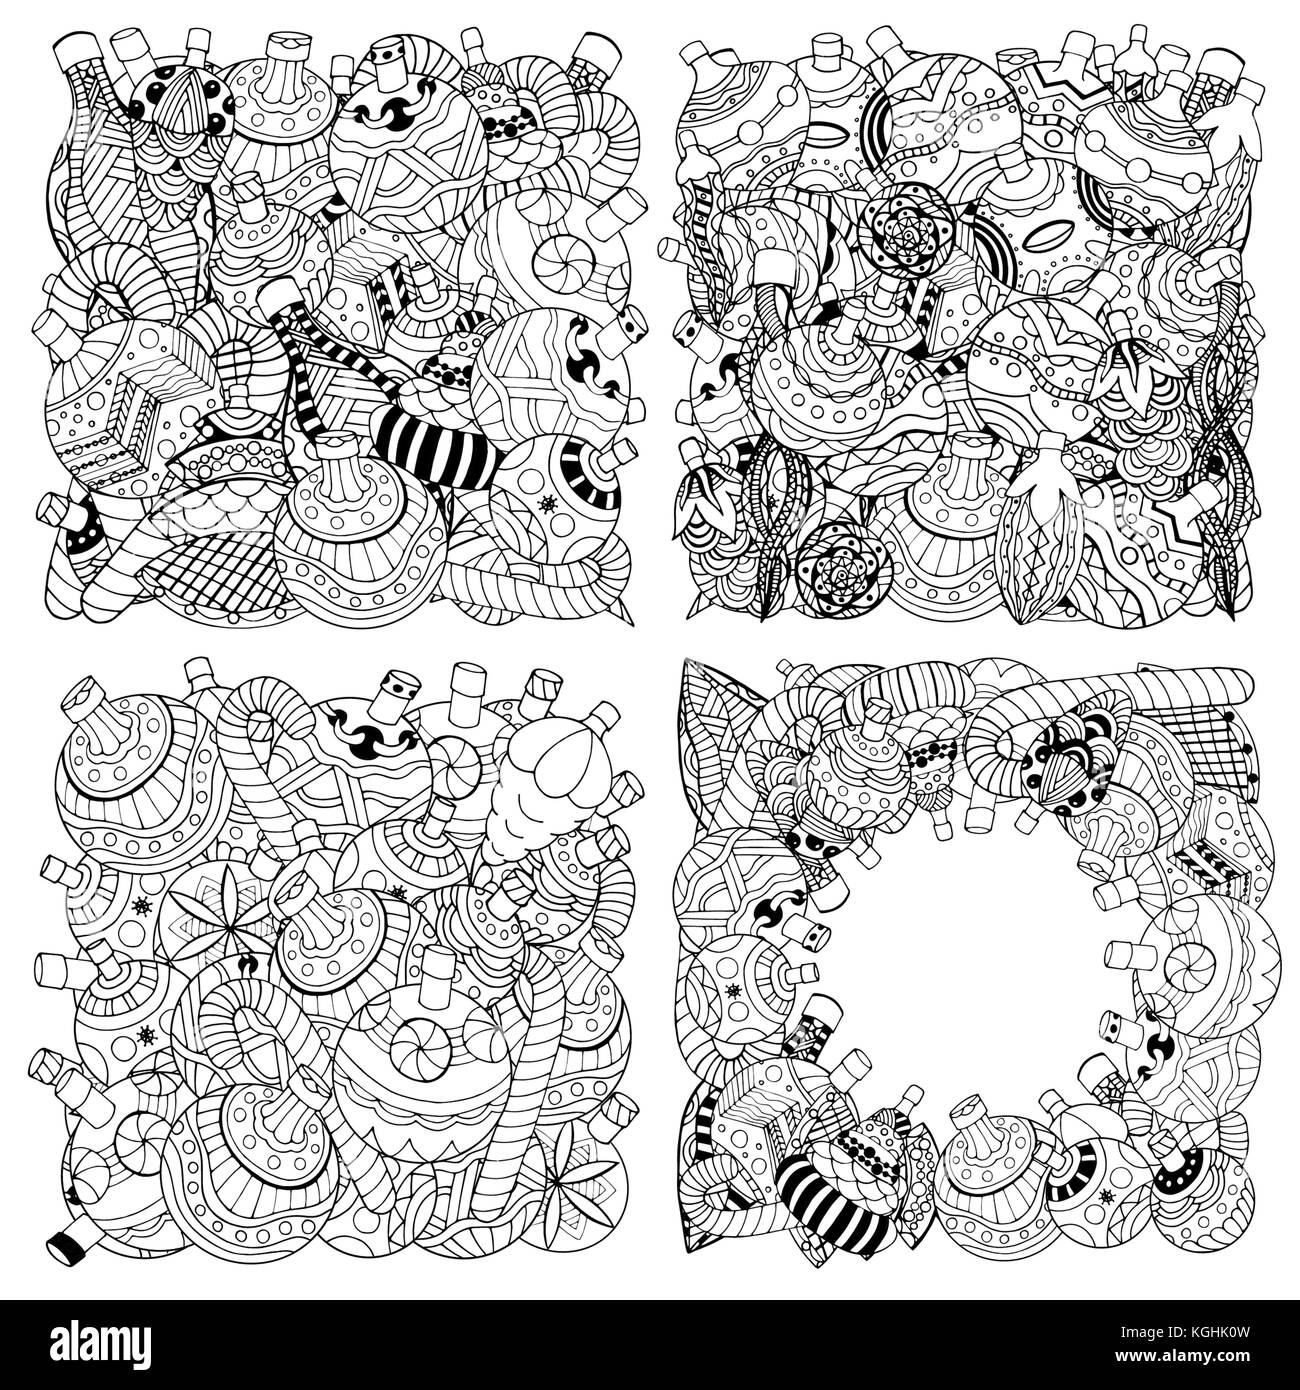 Old Fashioned Steven Furtick Coloring Book Inspiration - Coloring ...